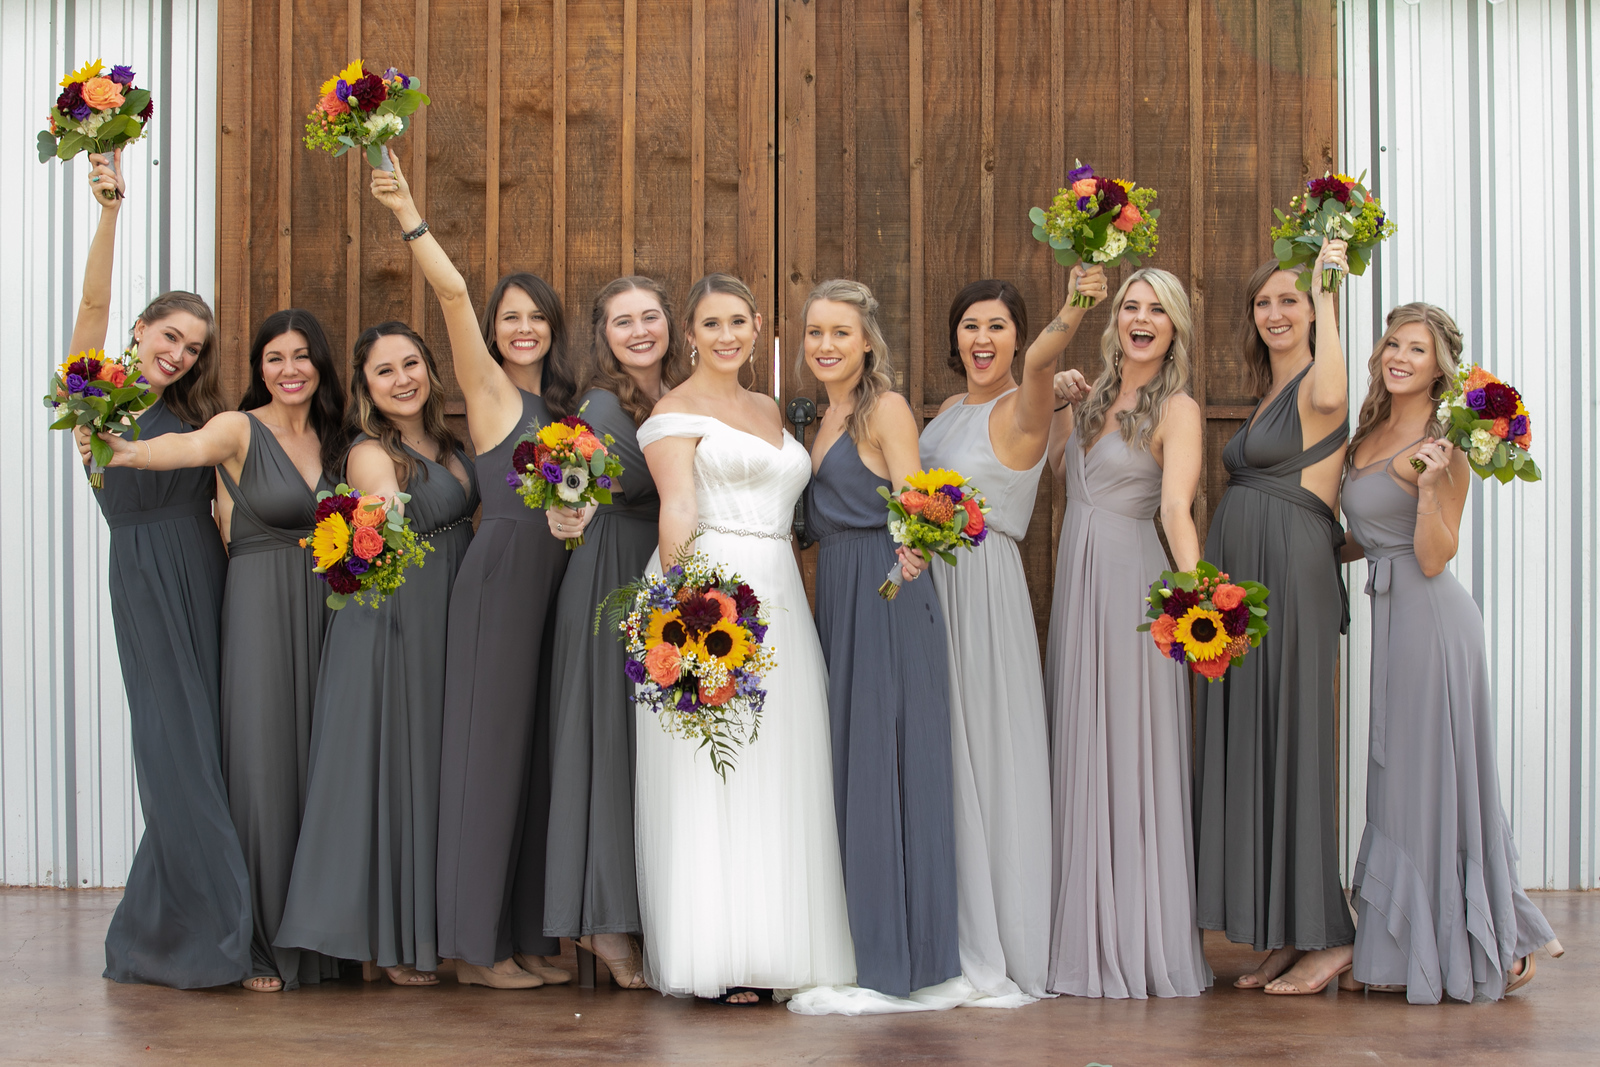 bride and 10 bridesmades smiling and raising their boquets standing in front of large wood doors at the entrance of the wedding venue